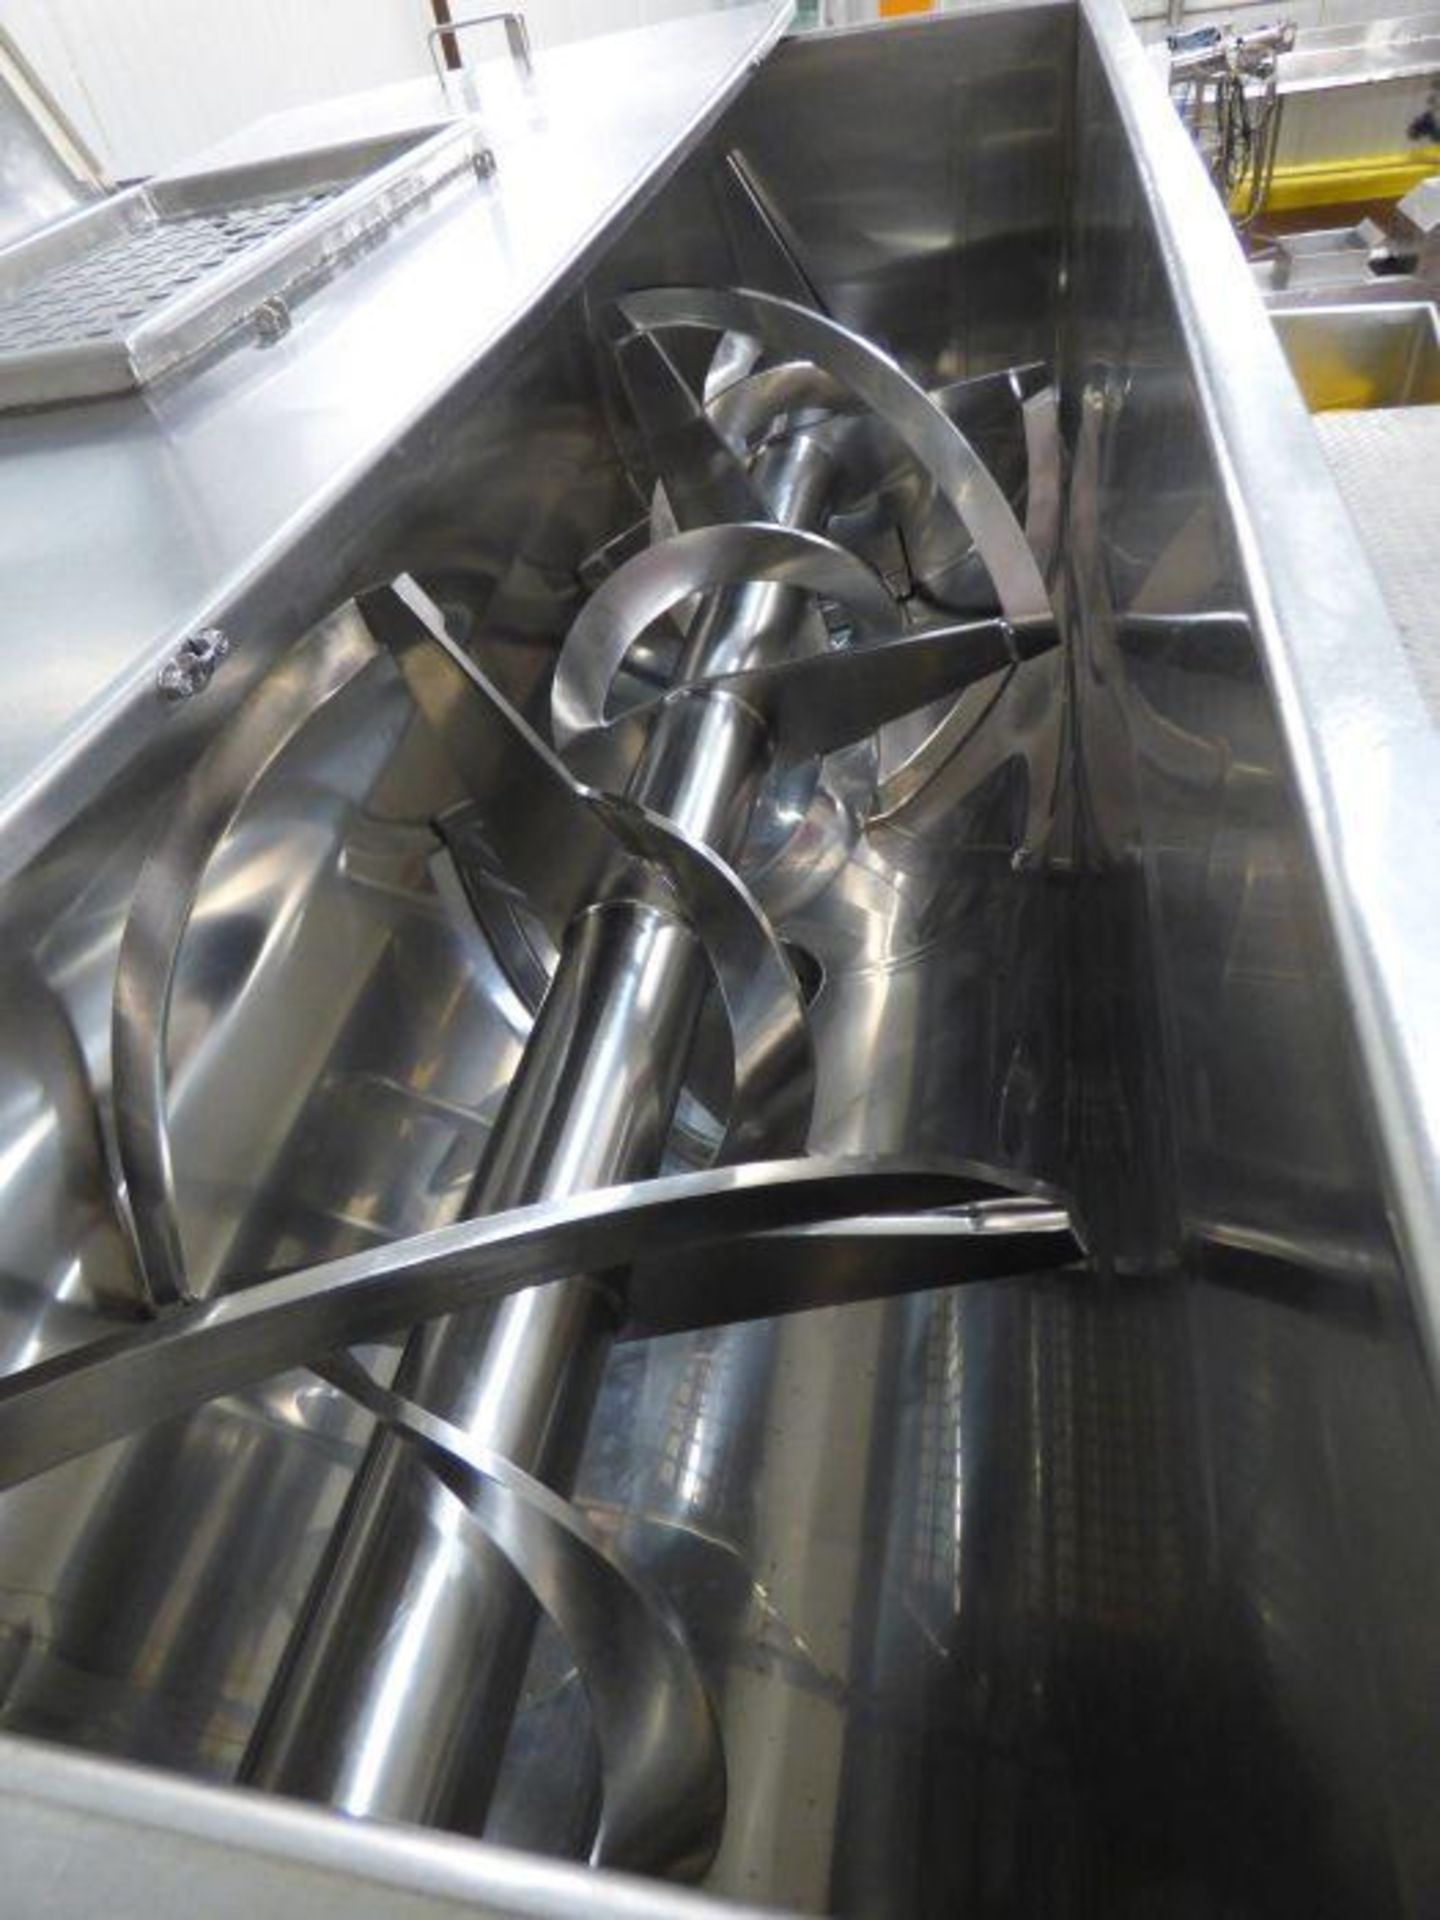 Lot 1060 - Aaron Process Equipment Stainless Steel Horizontal Ribbon Blender